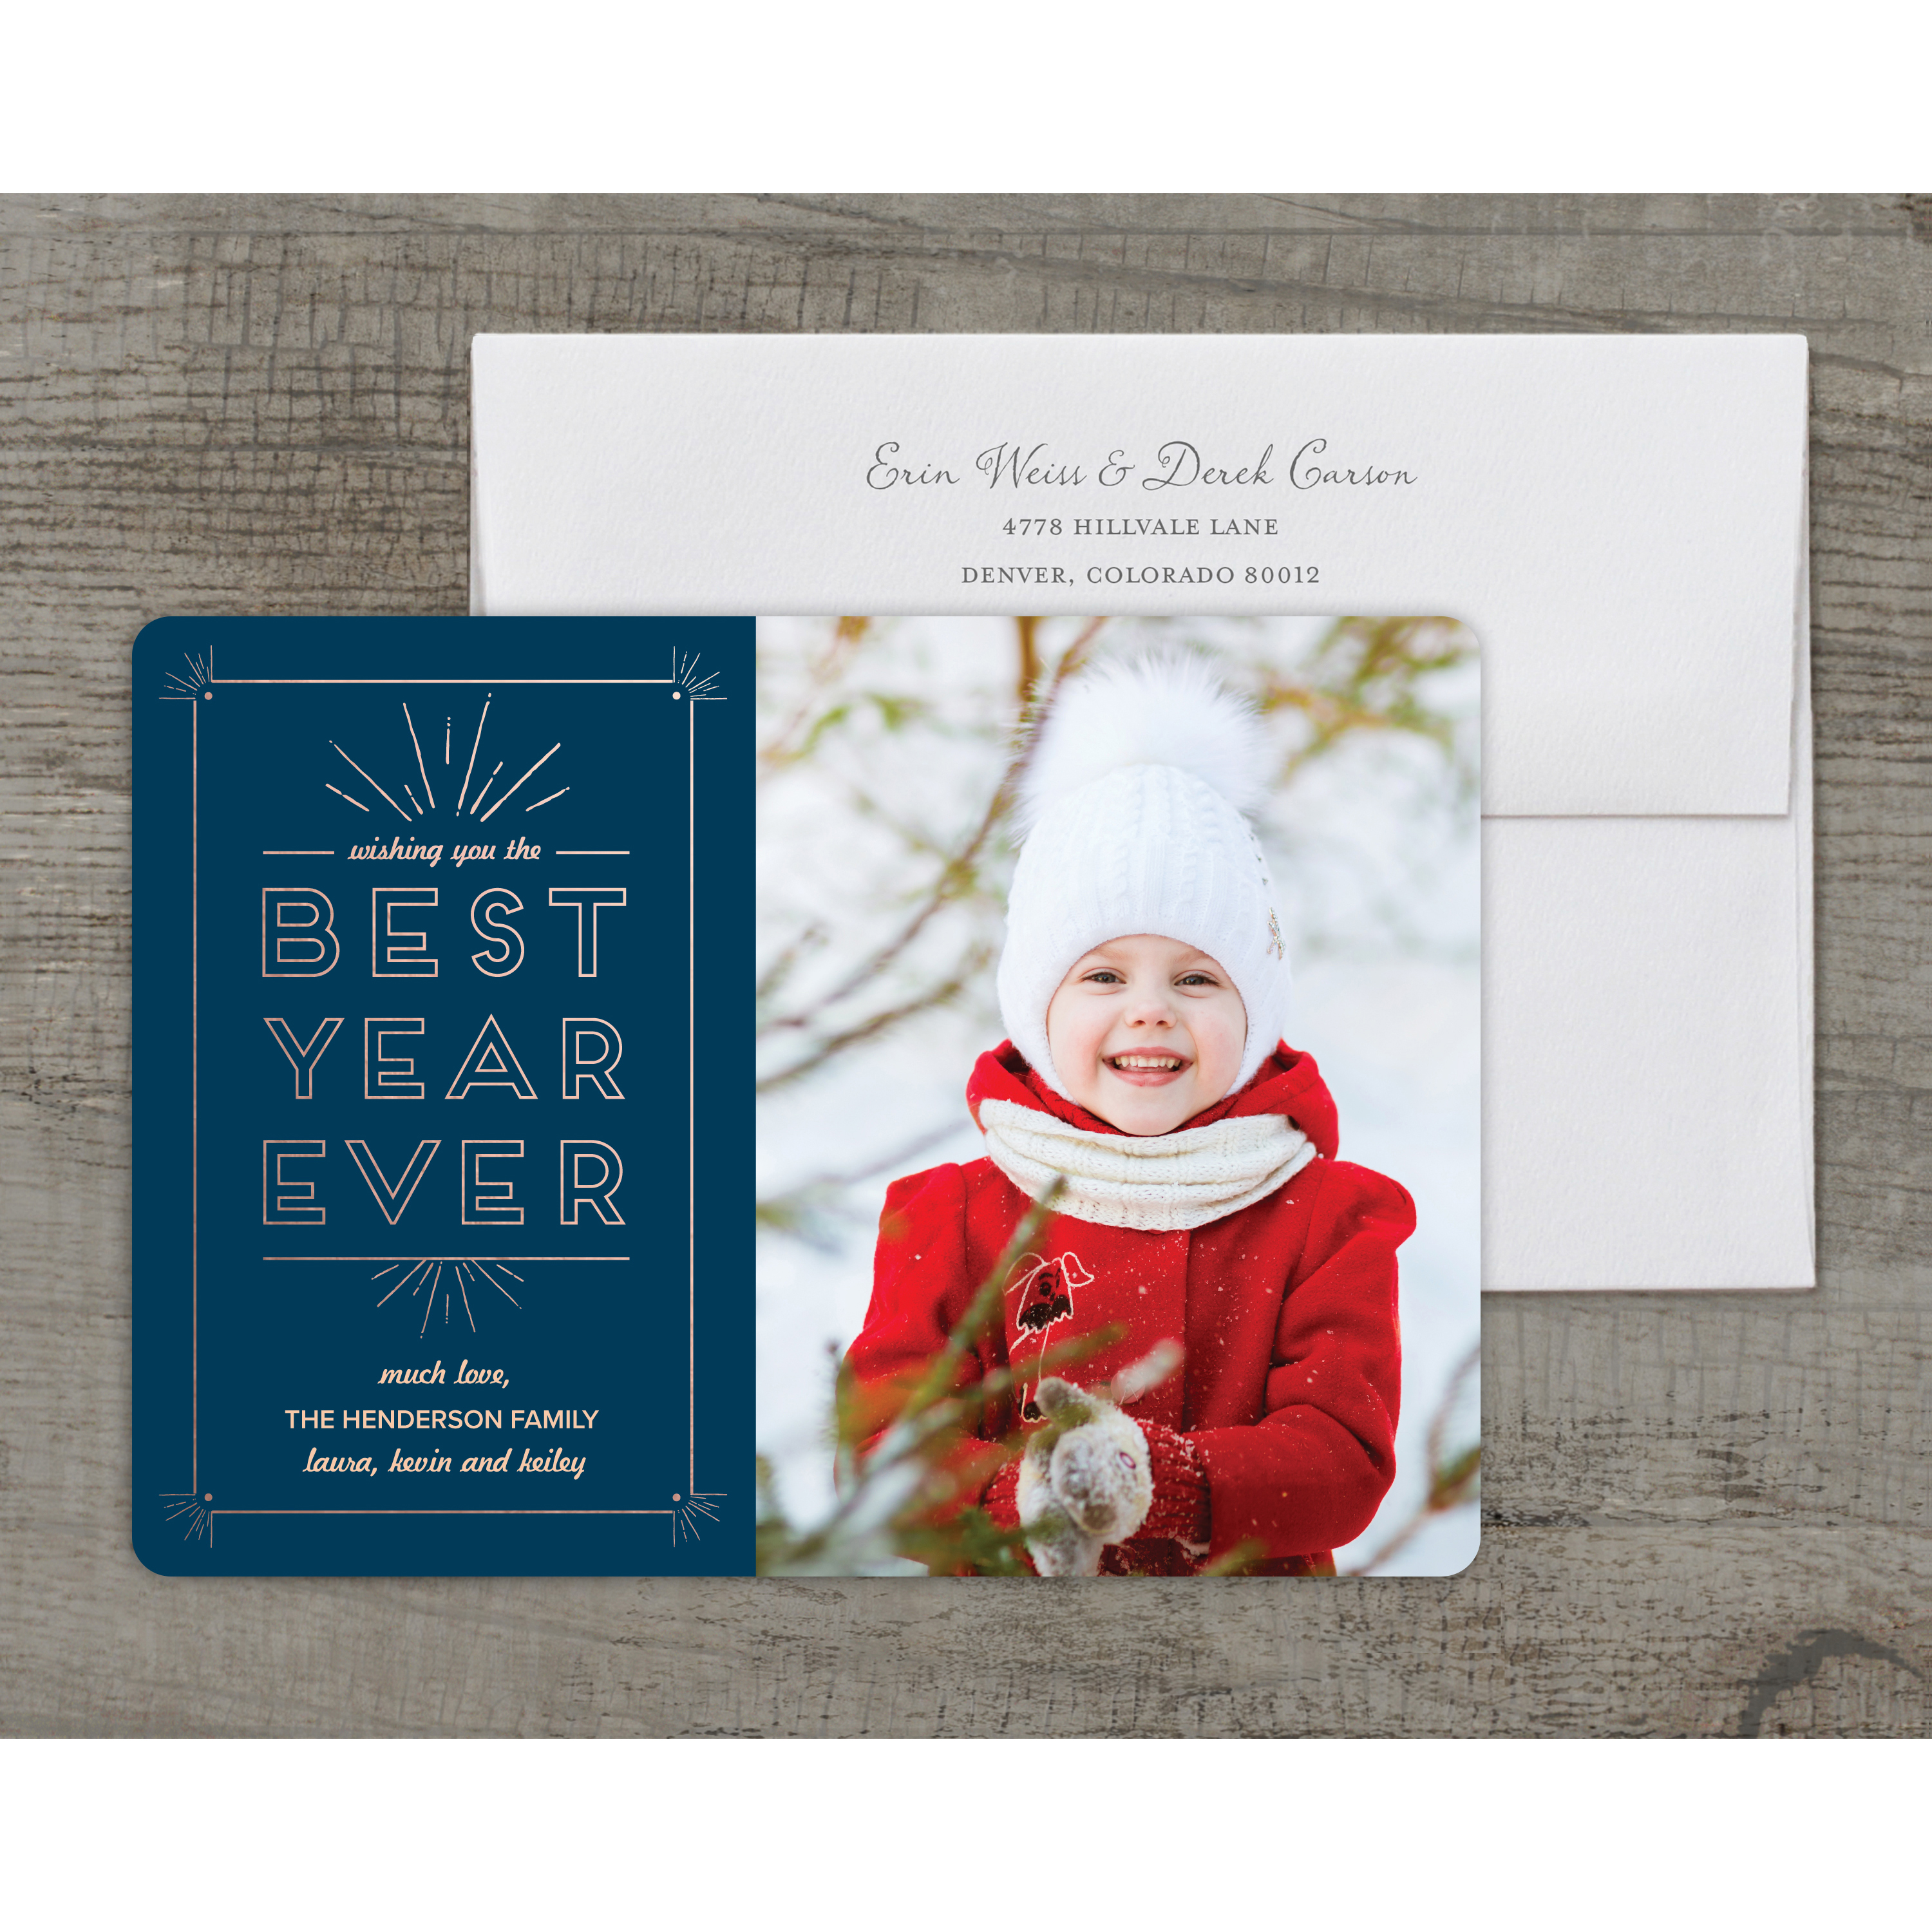 Best Year Ever - Deluxe 5x7 Personalized Holiday New Year Card